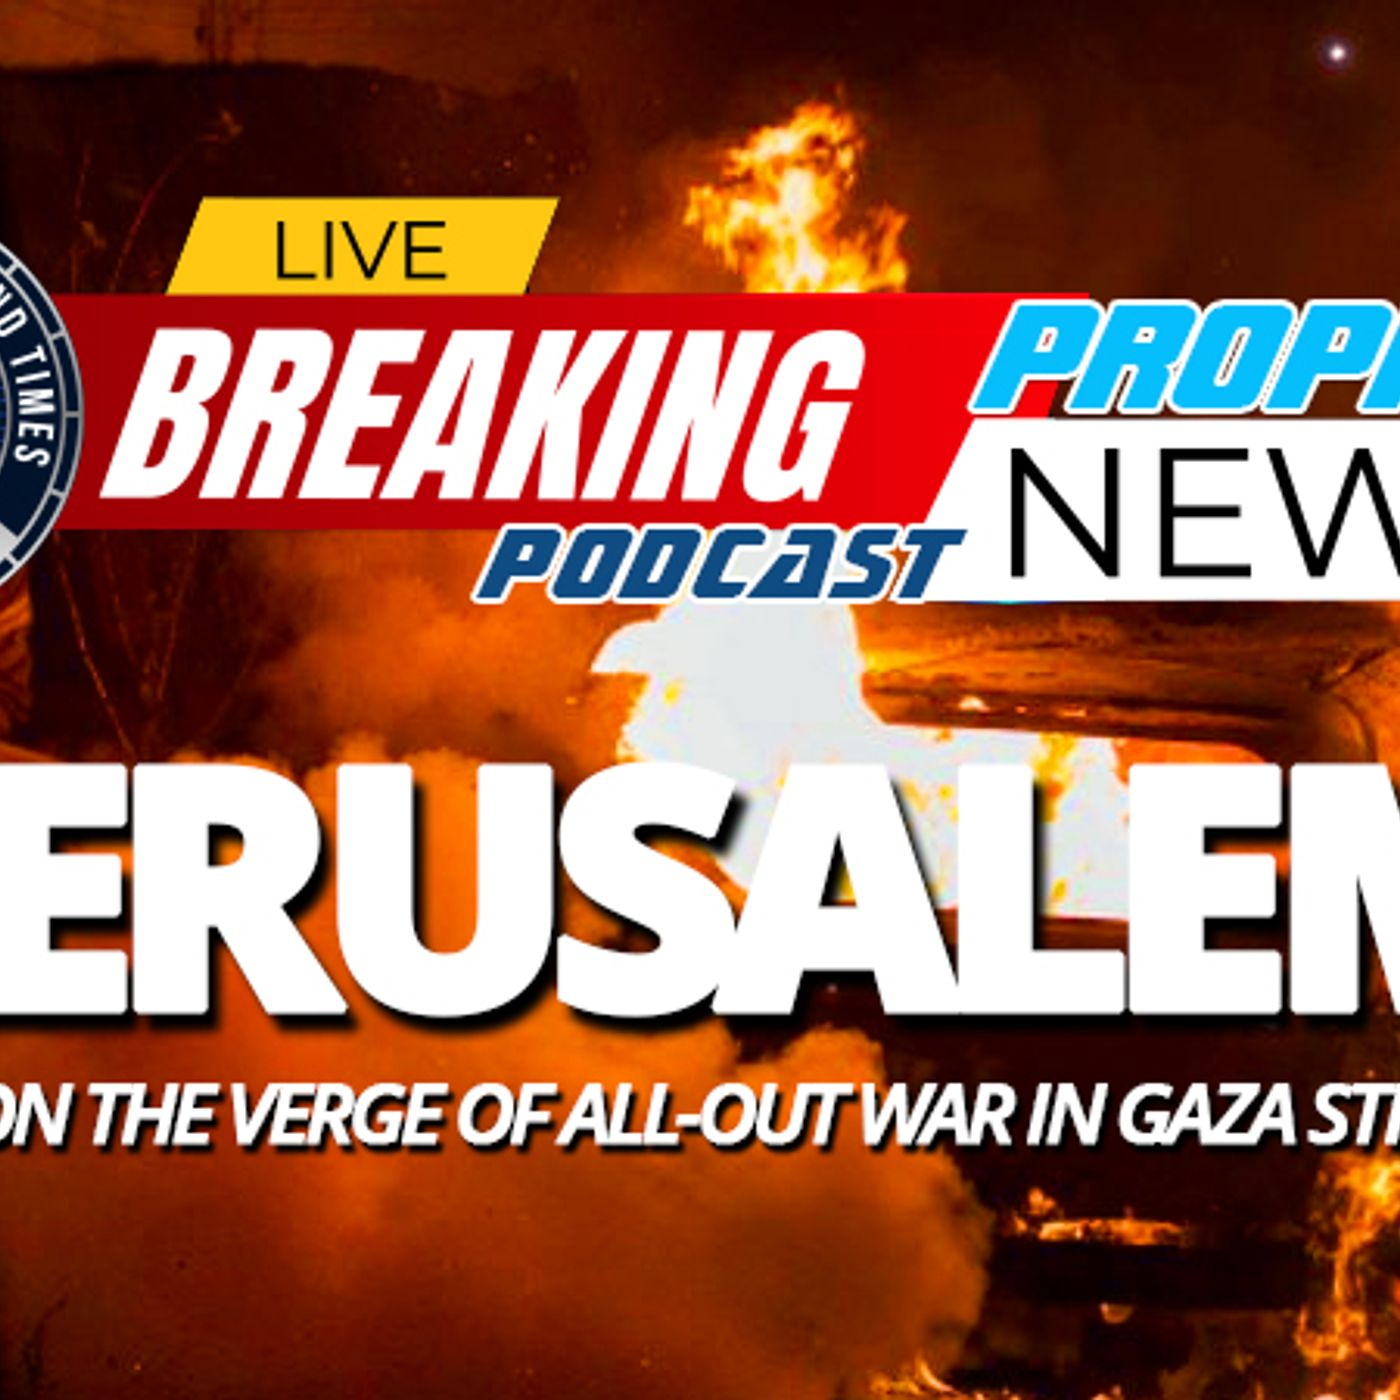 NTEB PROPHECY NEWS PODCAST: On Jerusalem Day In Israel The Specter Of All Out War Looms Between Israelis And Palestinians In Gaza Strip